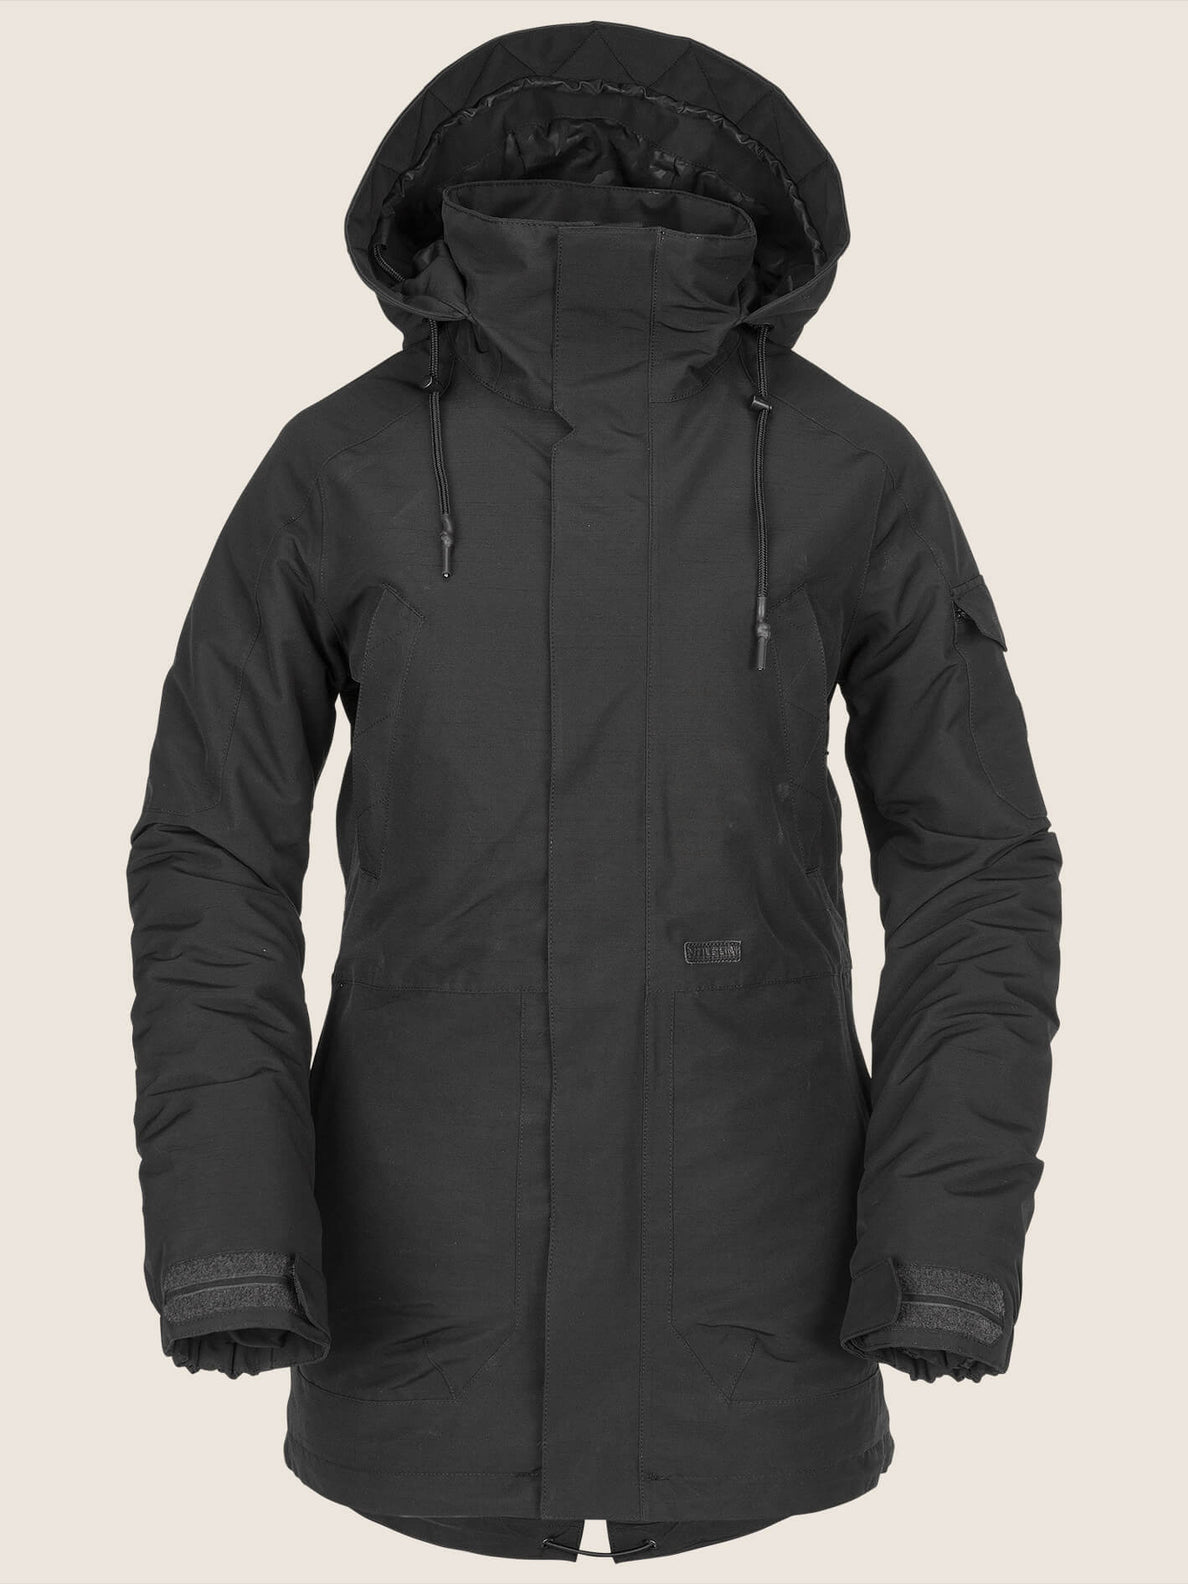 Shrine Insulated Jacket In Black, Front View